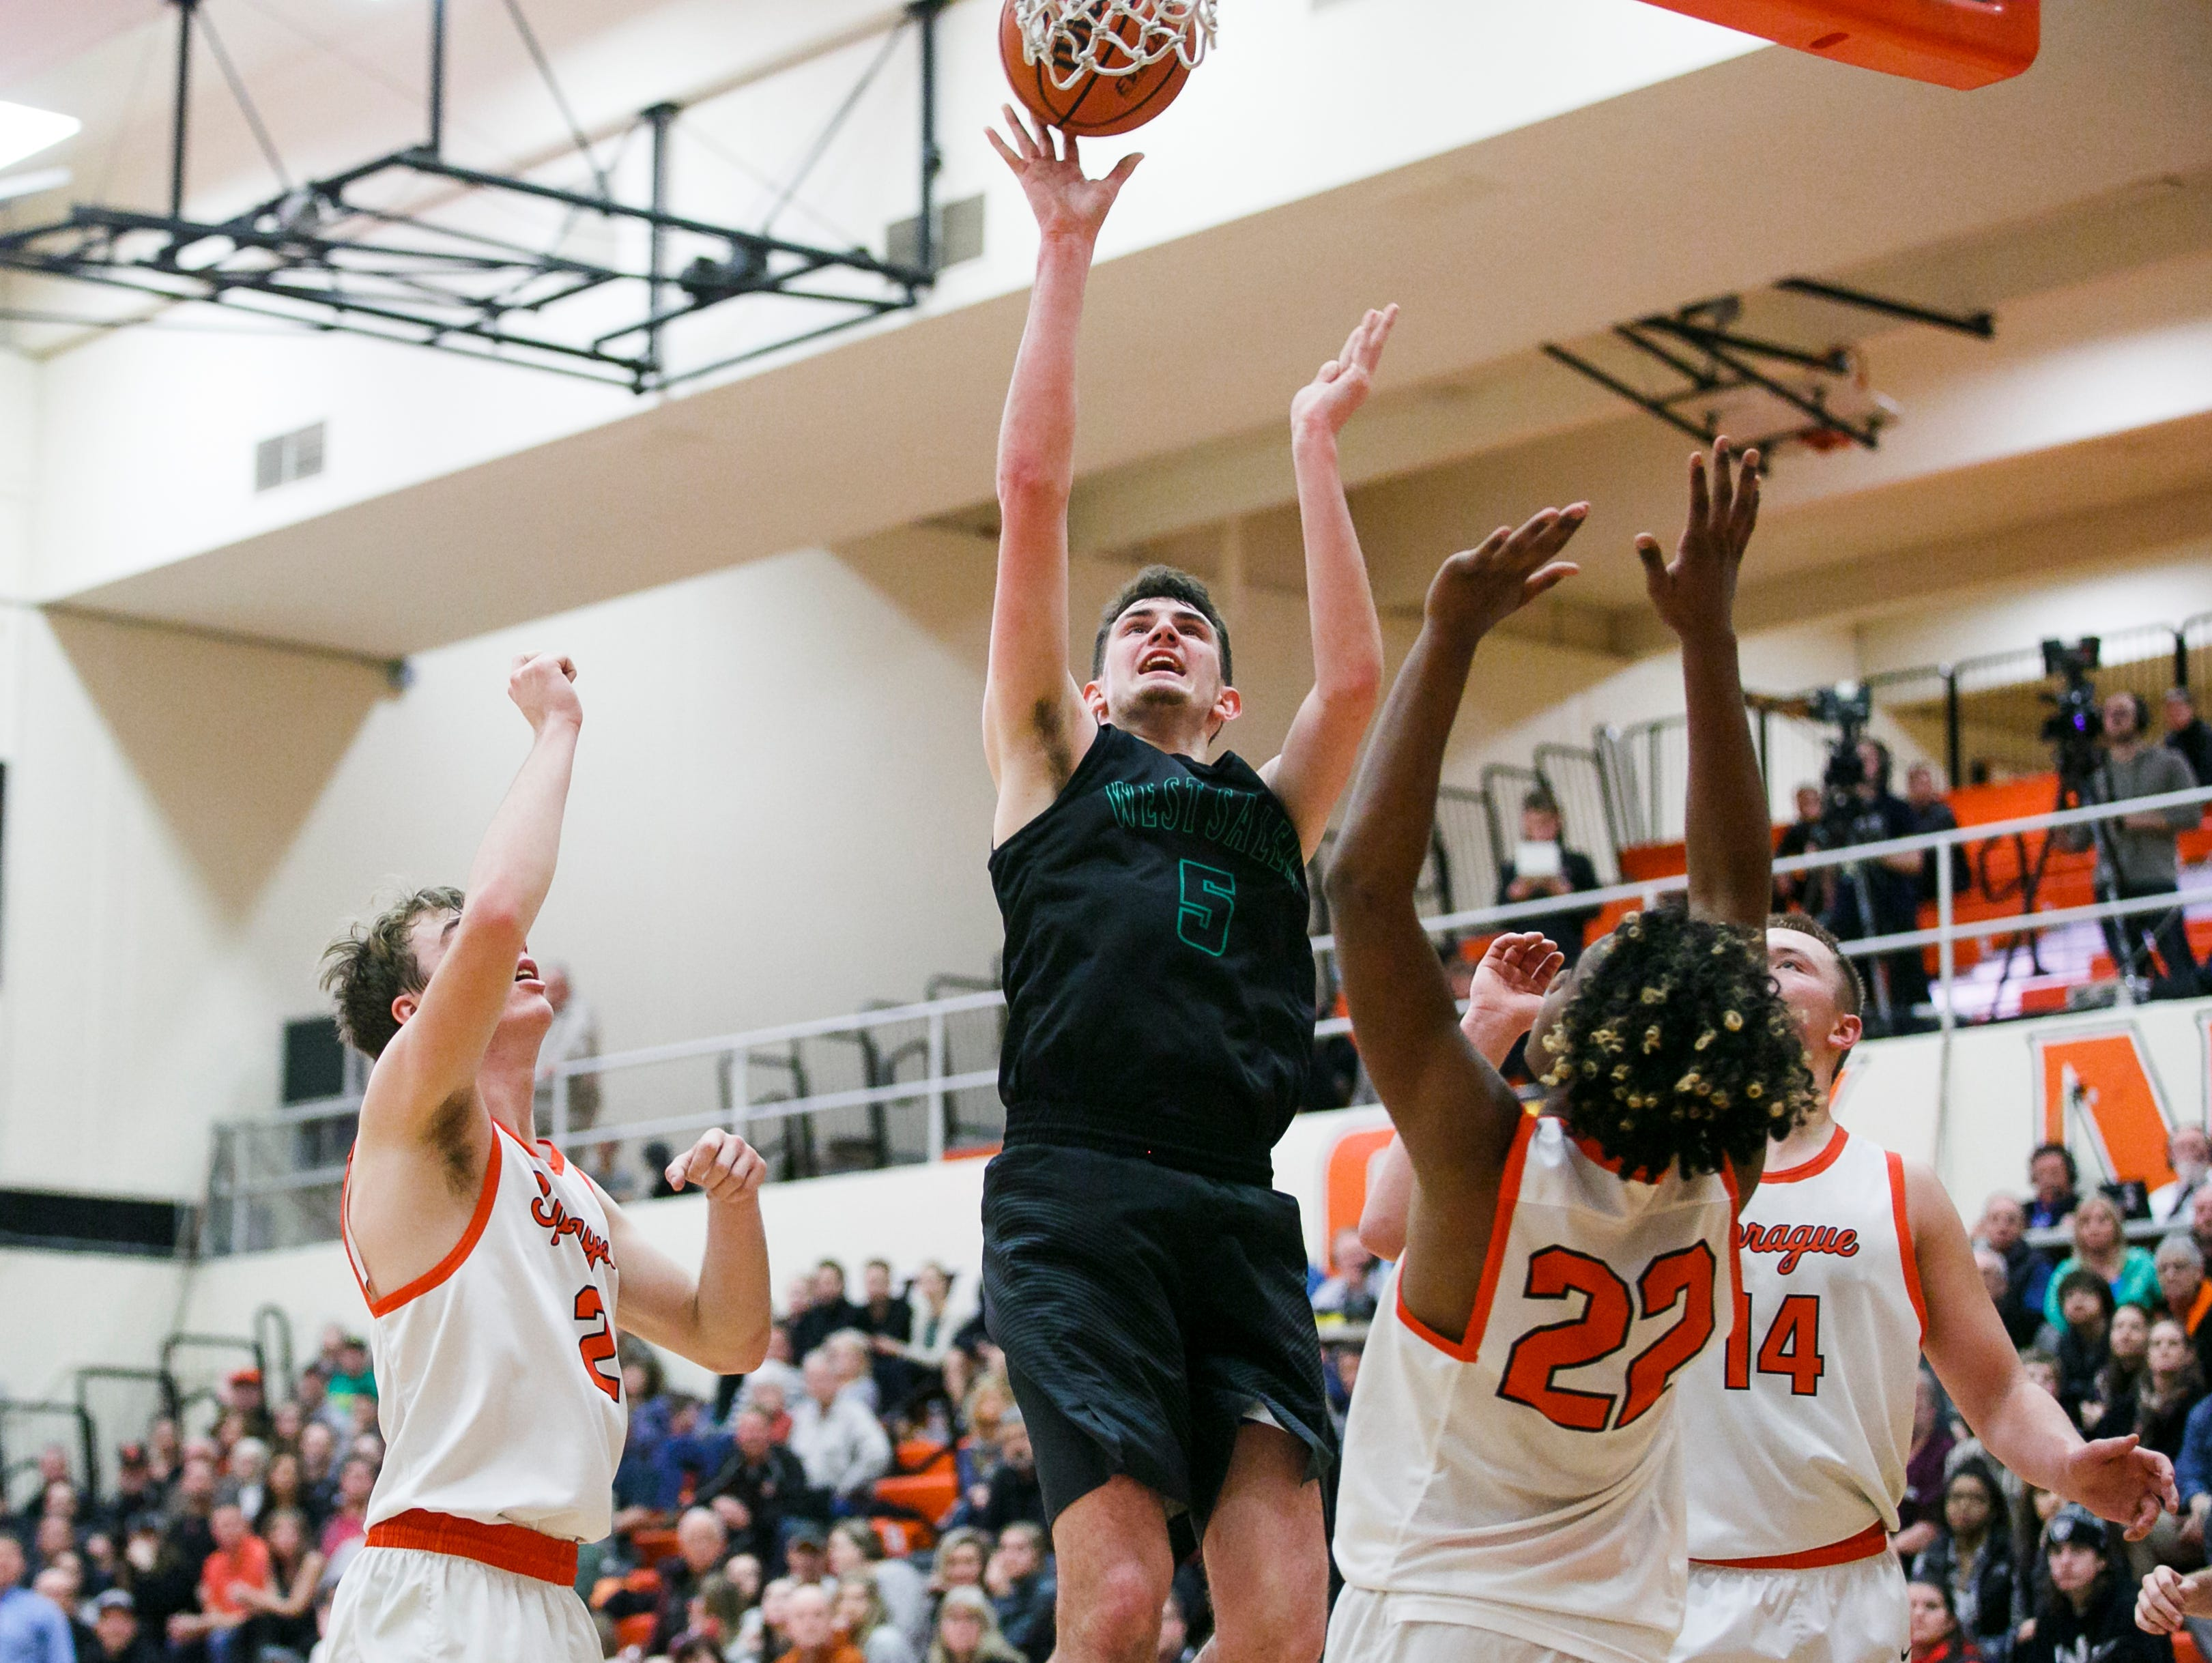 West Salem's Kyle Greeley (5) goes up for a basket against Sprague on Tuesday, Feb. 7, 2017, at Sprague High School. Sprague beat West Salem 71-65 to take first place in the Greater Valley Conference.